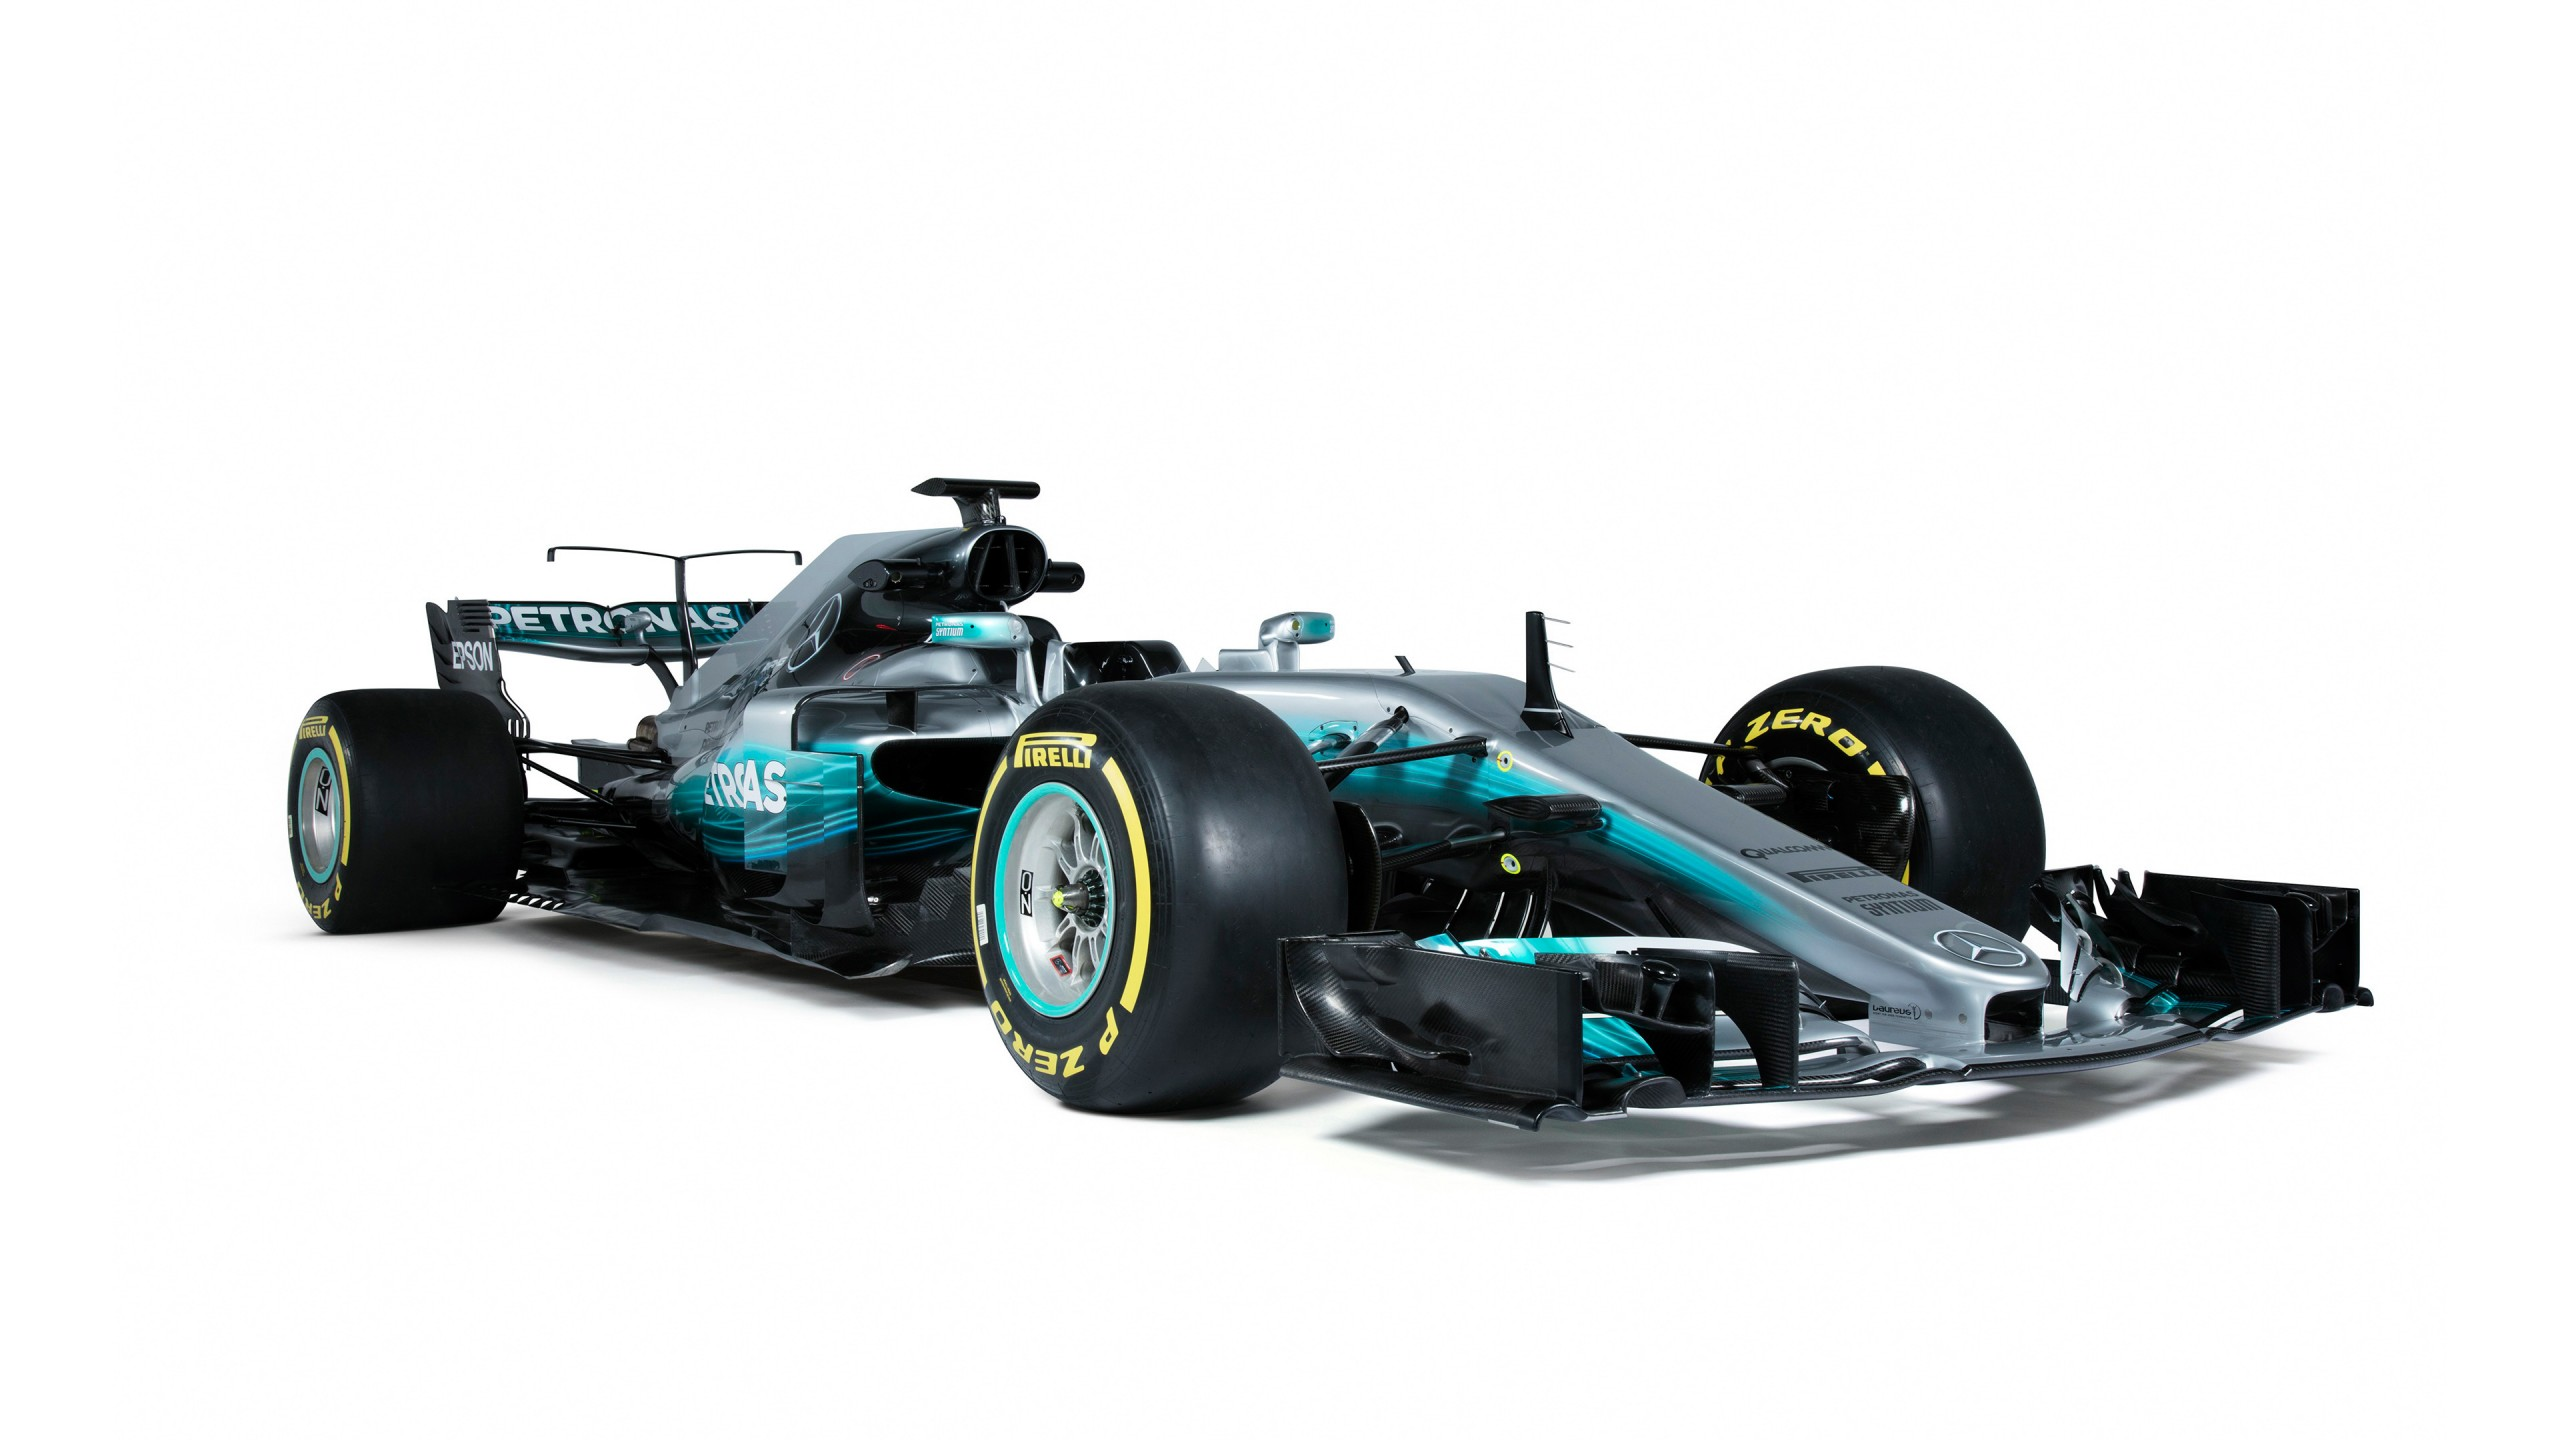 2017 Mercedes Amg F1 W08 Eq Power Formula 1 Car Wallpaper